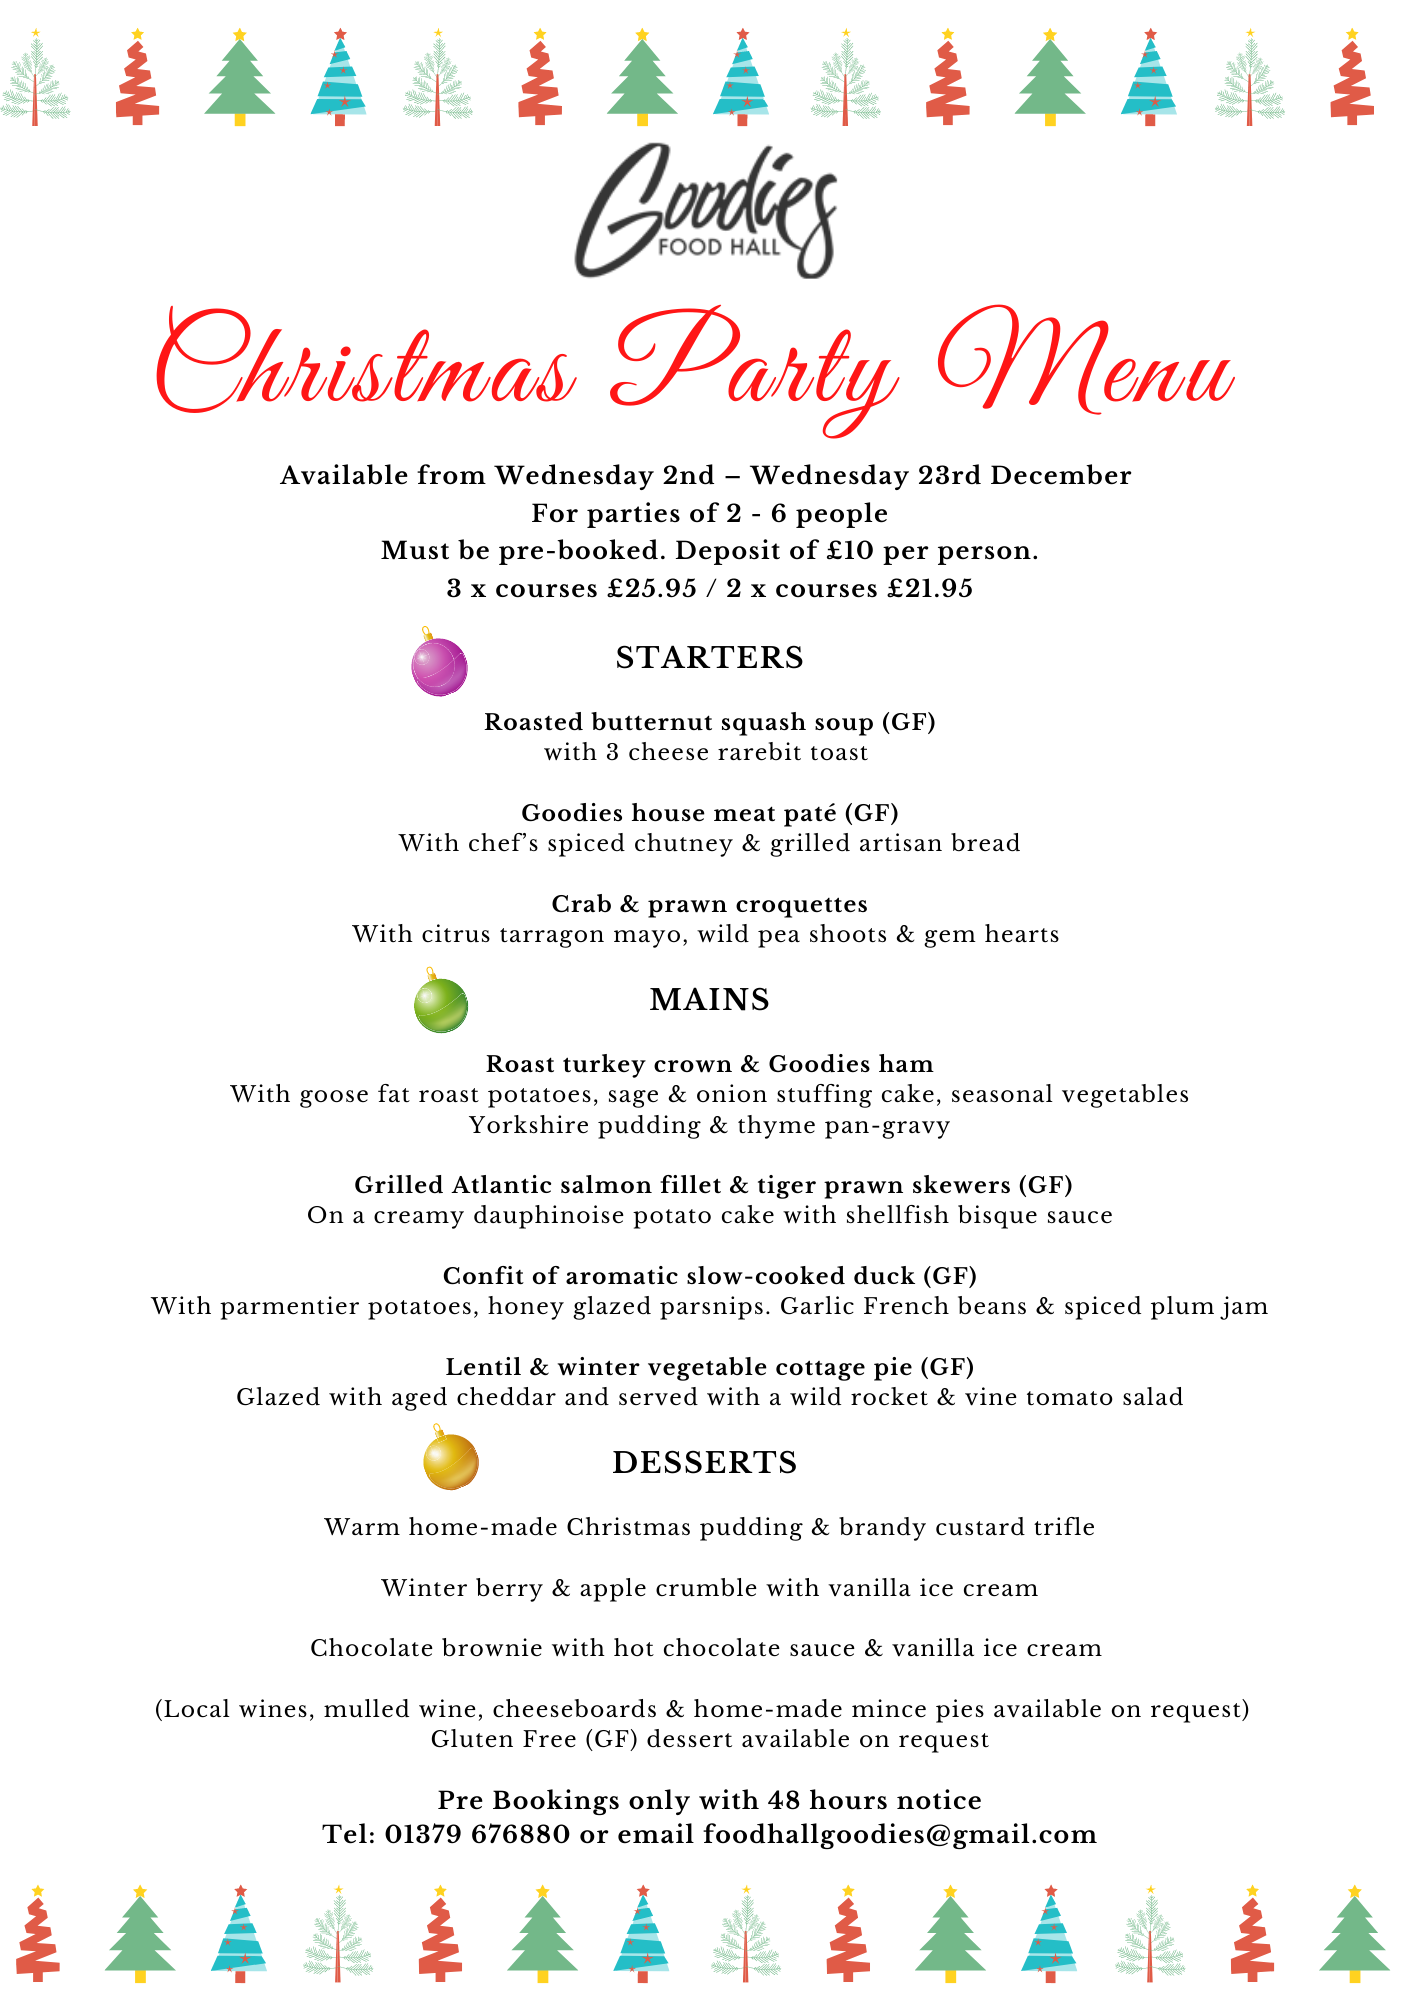 Christmas Party Menu 011220